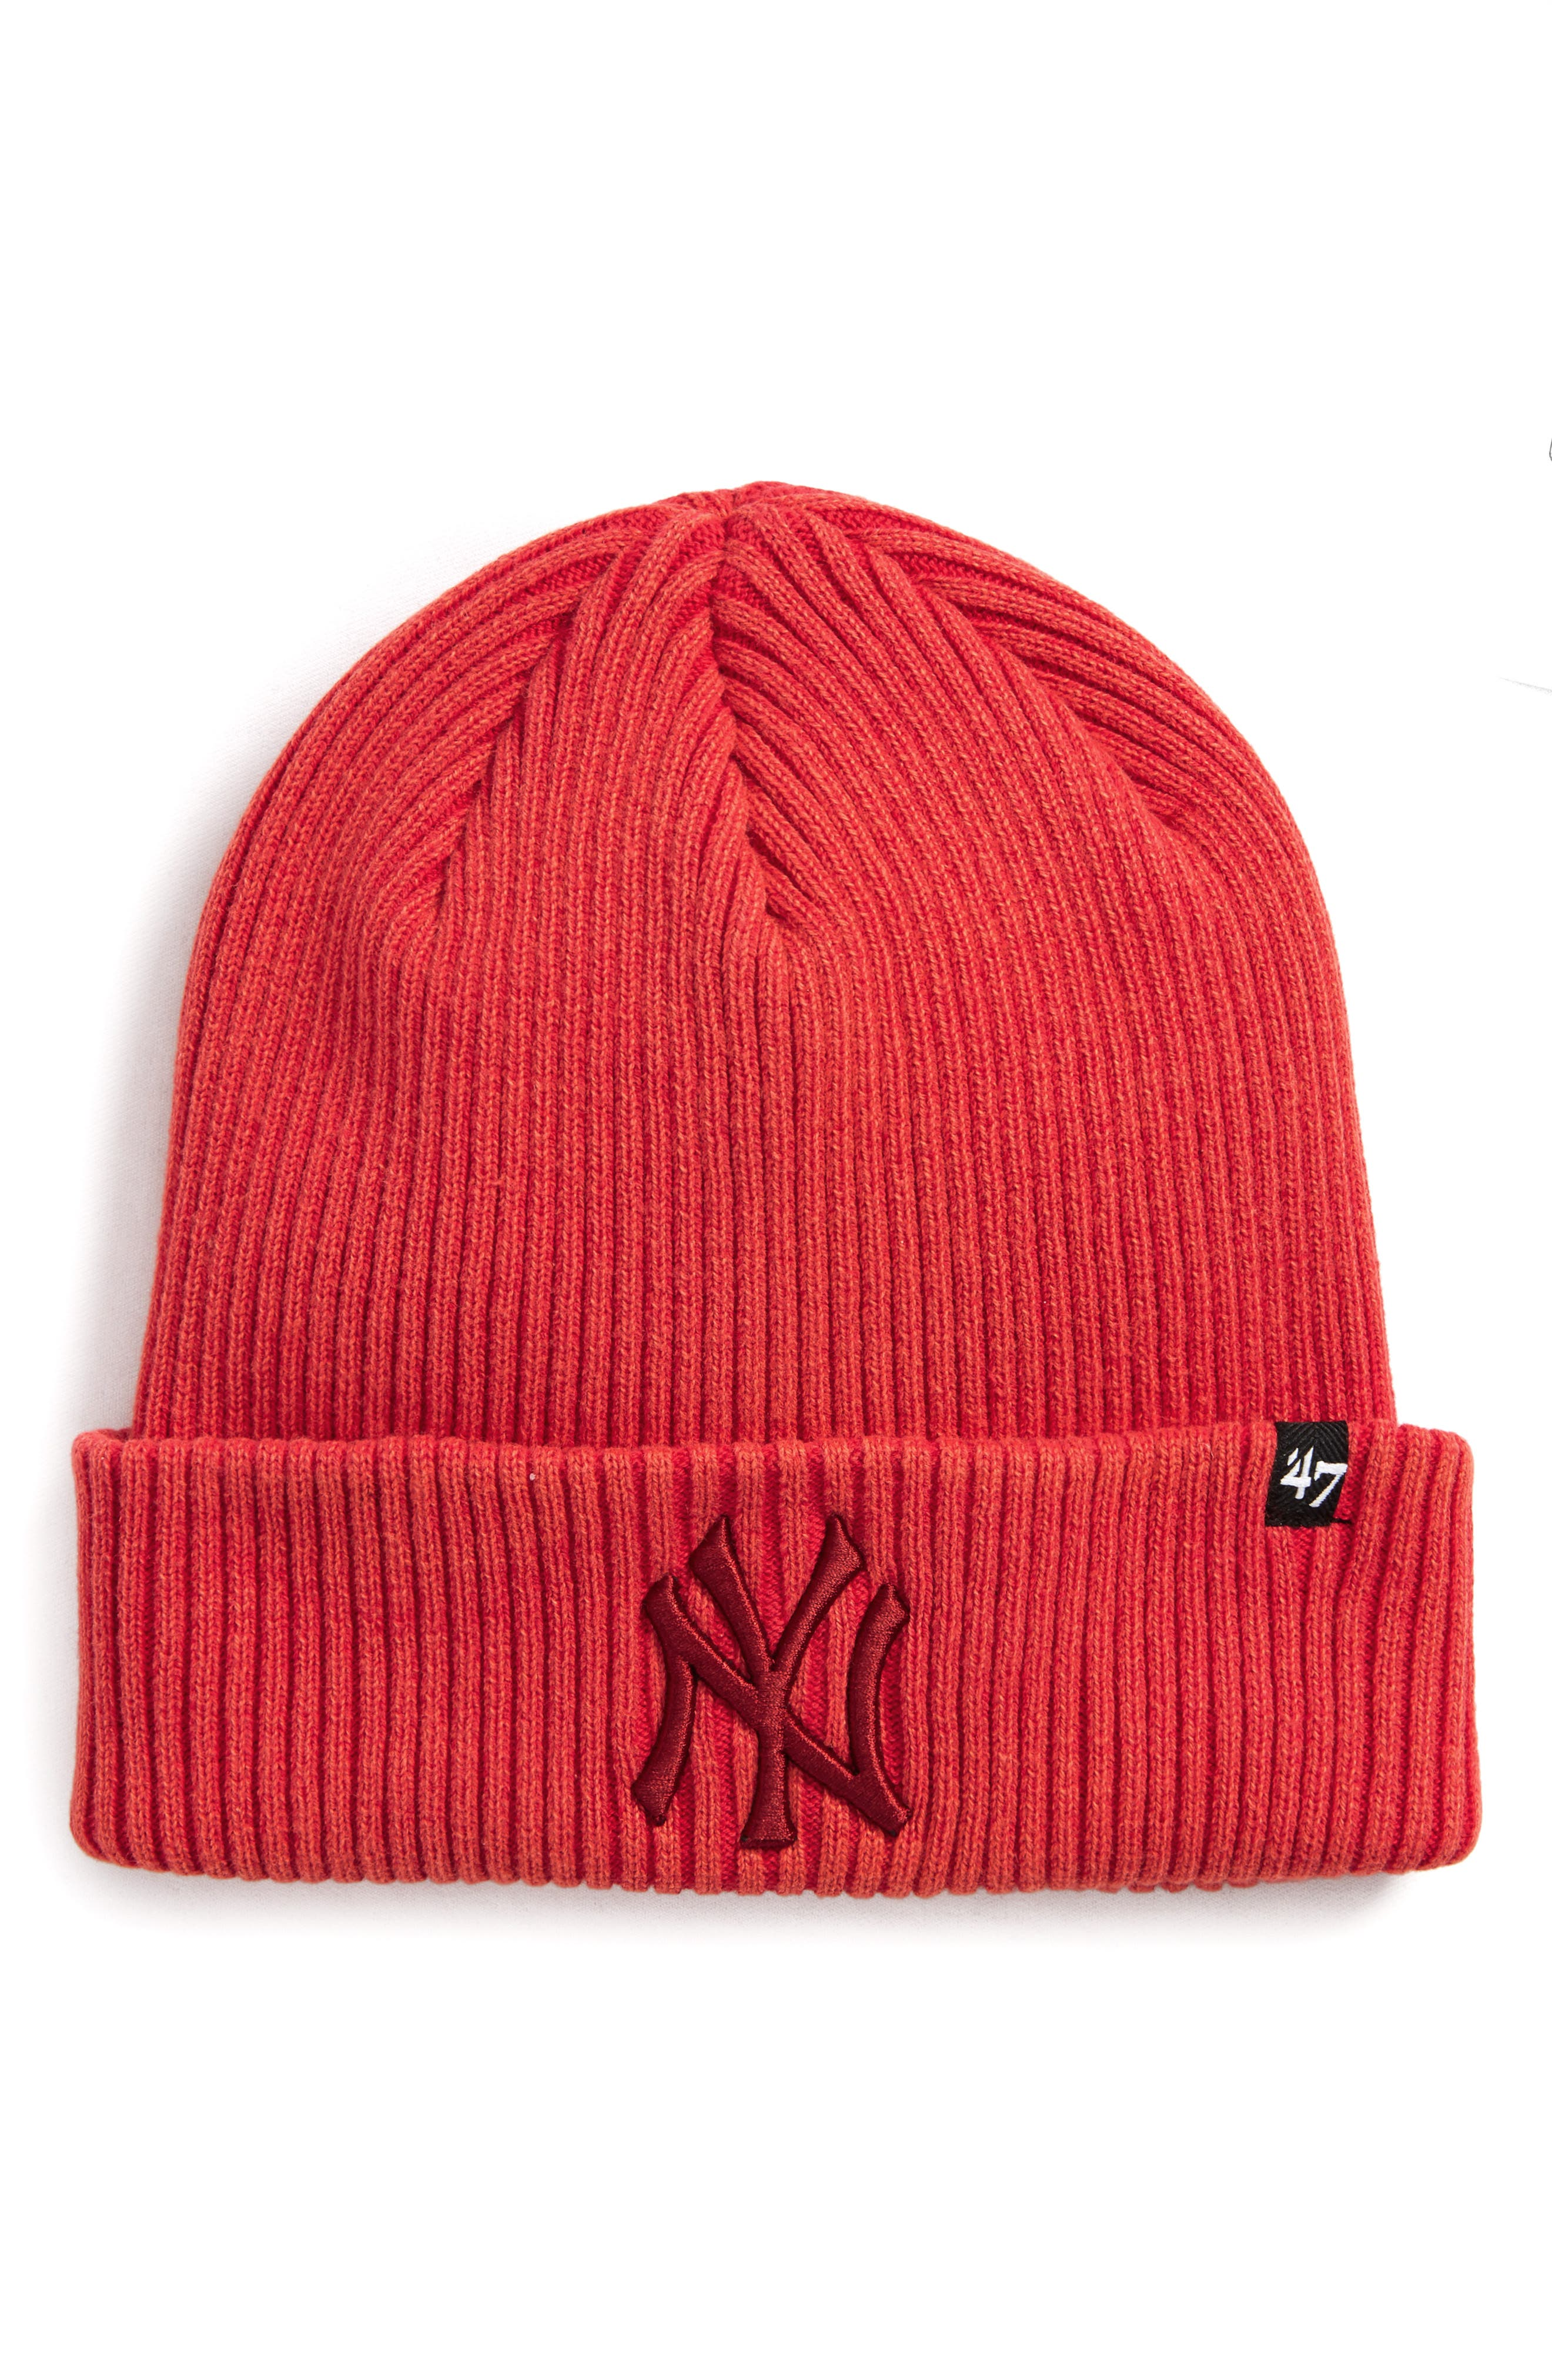 New York Yankees Northwood Beanie,                             Main thumbnail 1, color,                             600